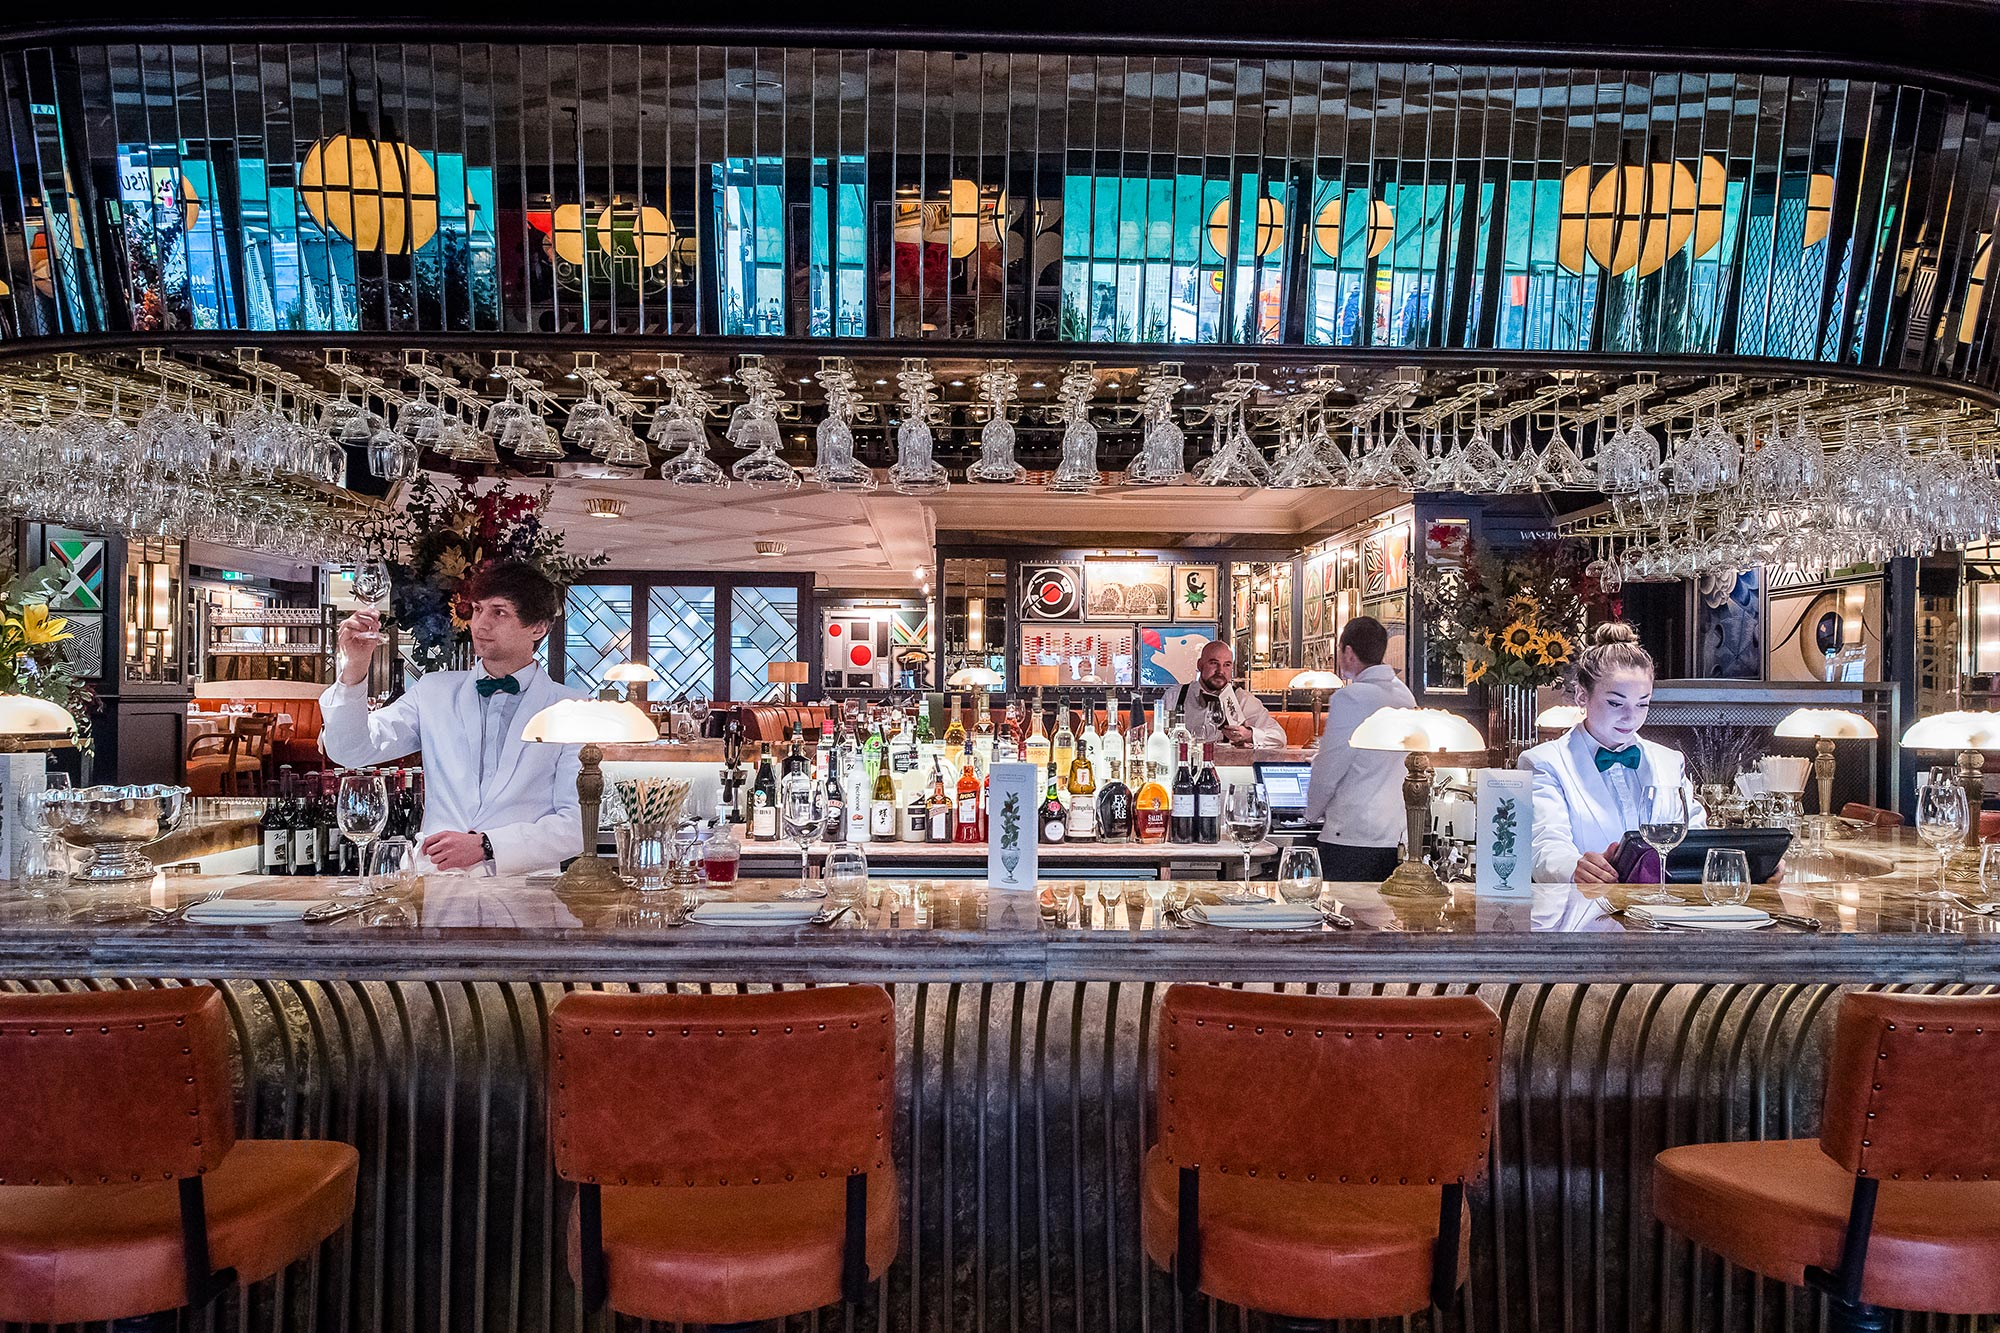 The-Ivy-Soho-Brasserie-central-bar-staff-in-action-2